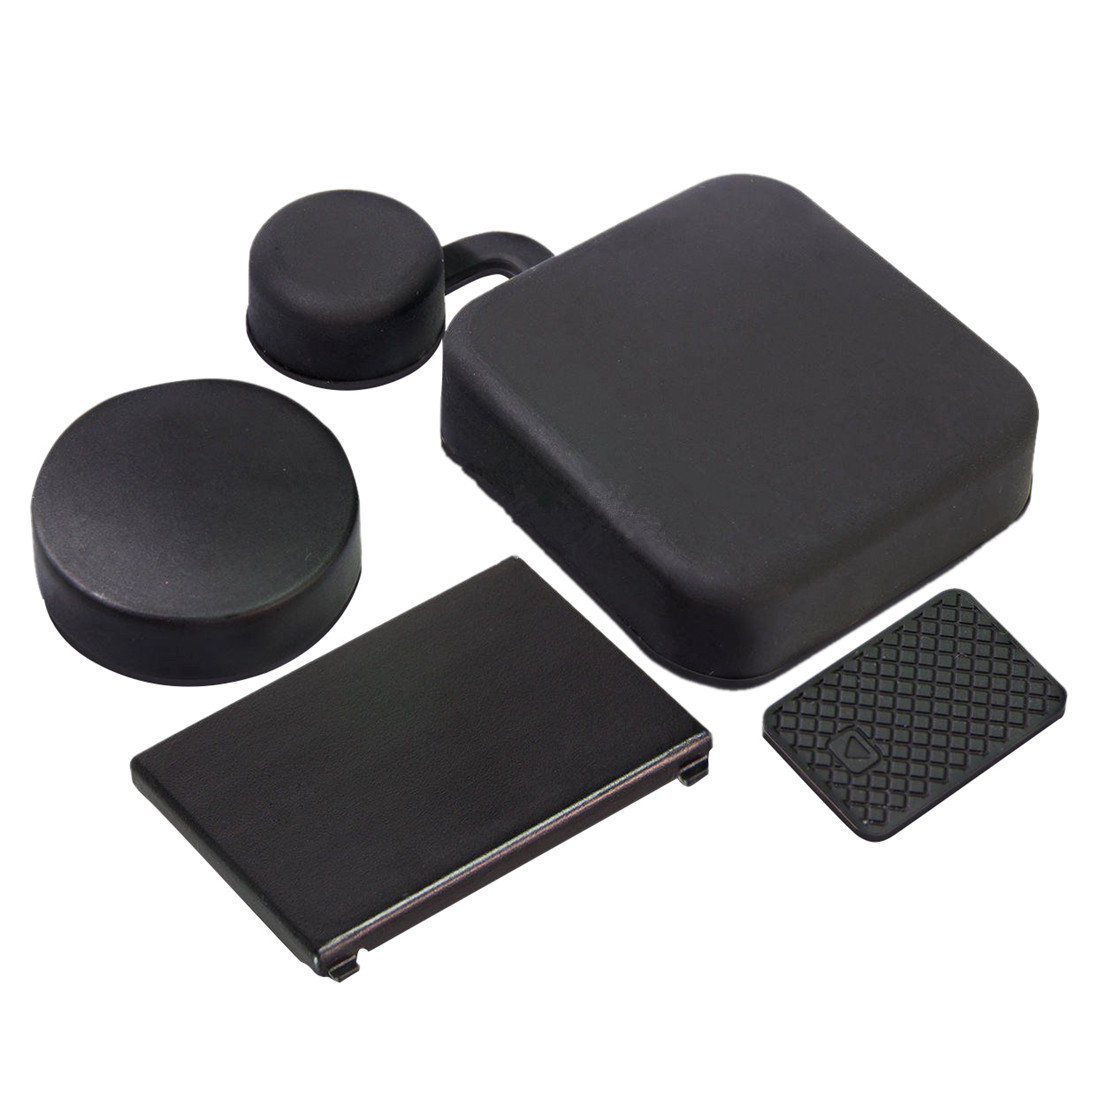 4 In 1 Housing Lens Cover+Lens Cap +Replacement Battery Door+Side Door Cover For GoPro Hero 4/3+ Camera